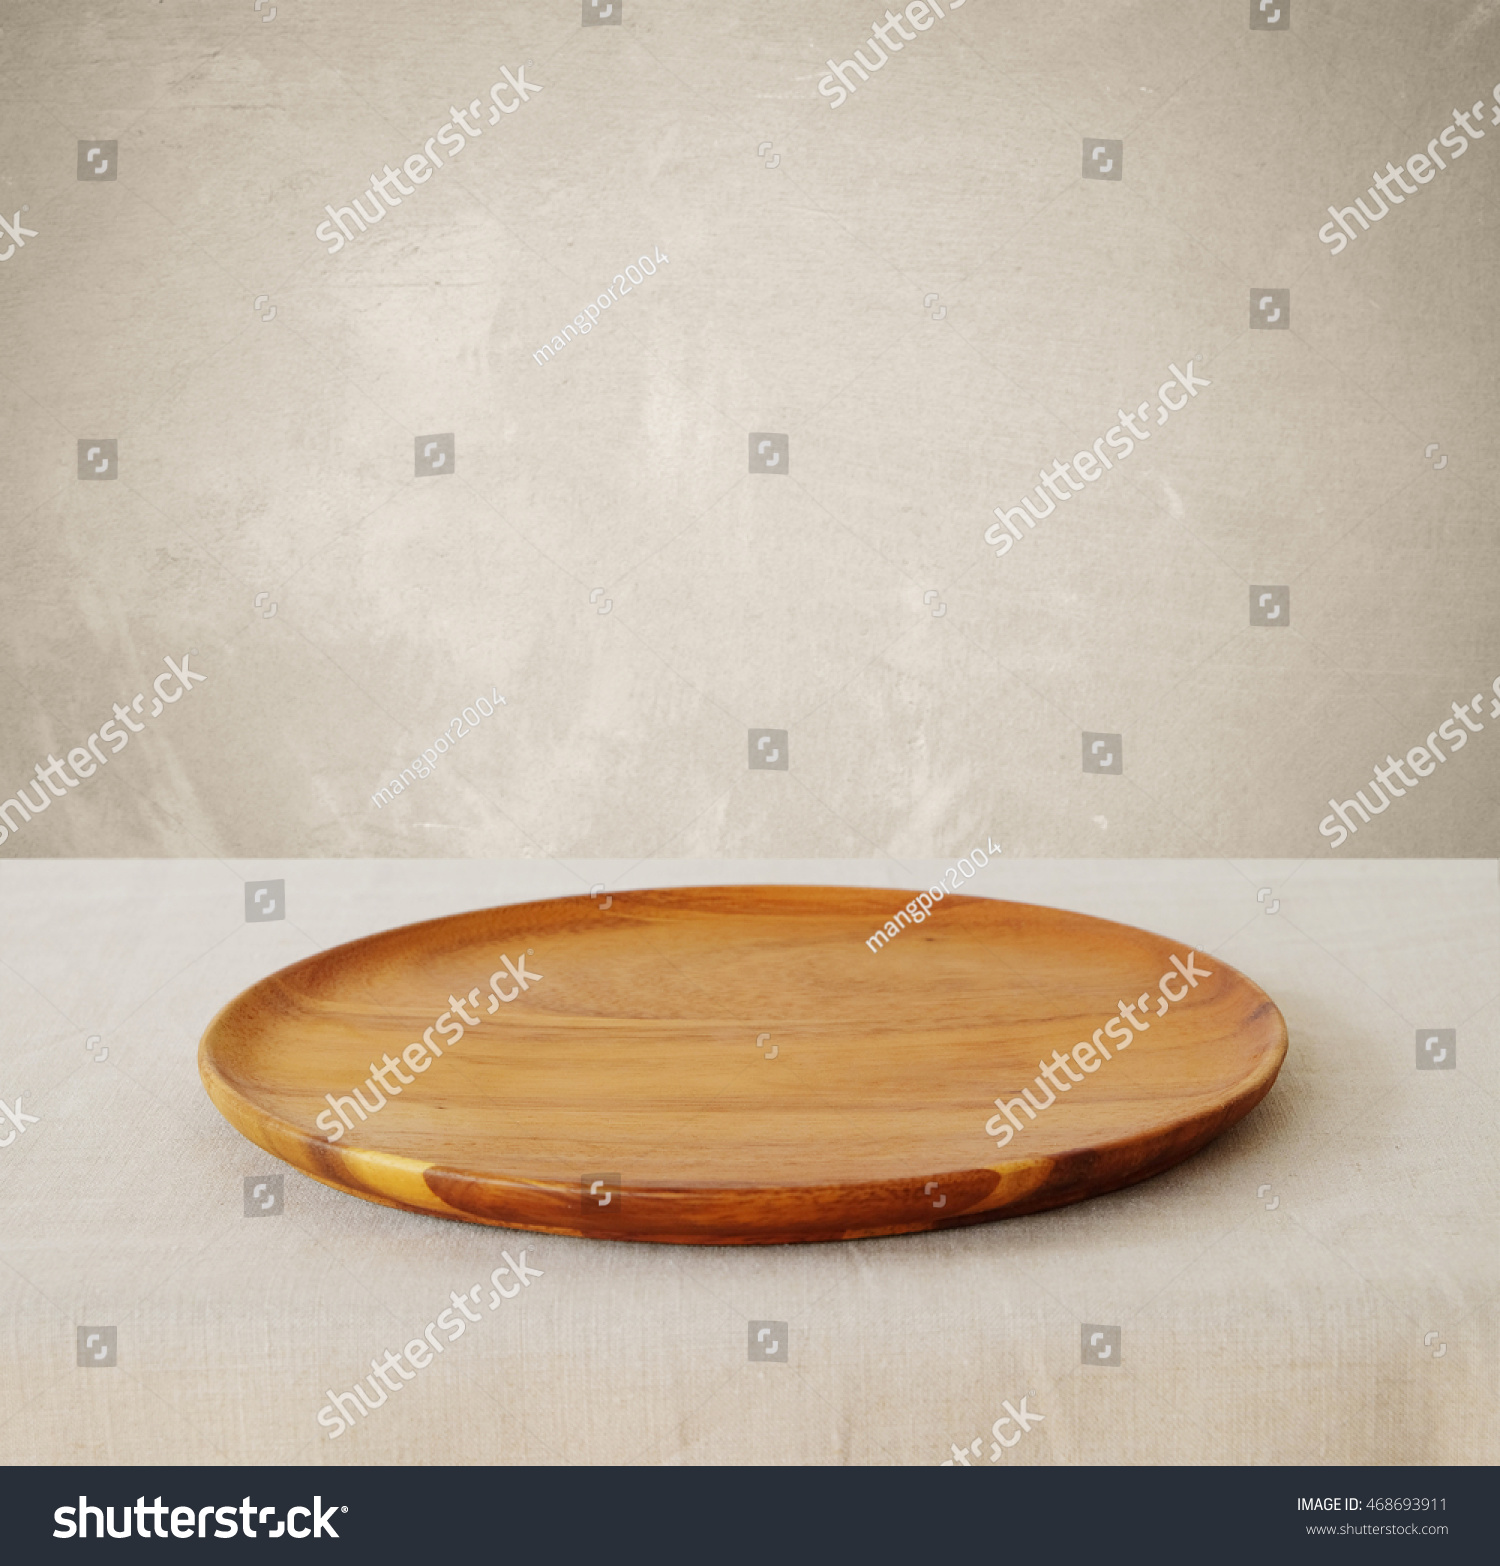 Empty Kitchen Wall Empty Round Wooden Tray On Linen Stock Photo 468693911 Shutterstock